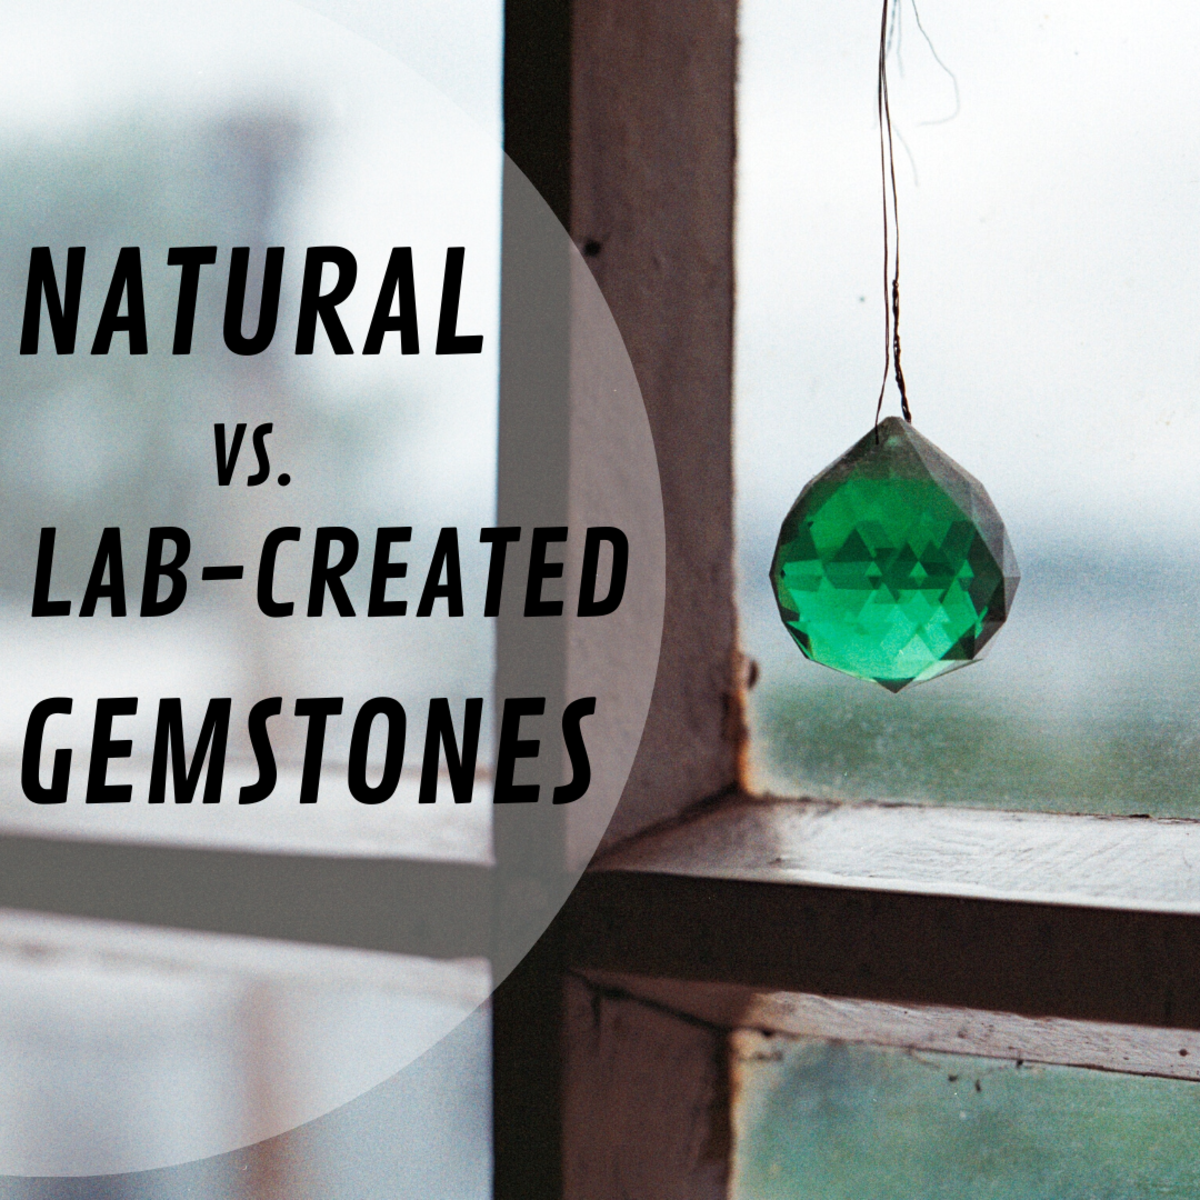 How do you tell apart natural vs. lab-created rubies, sapphires, and emeralds?